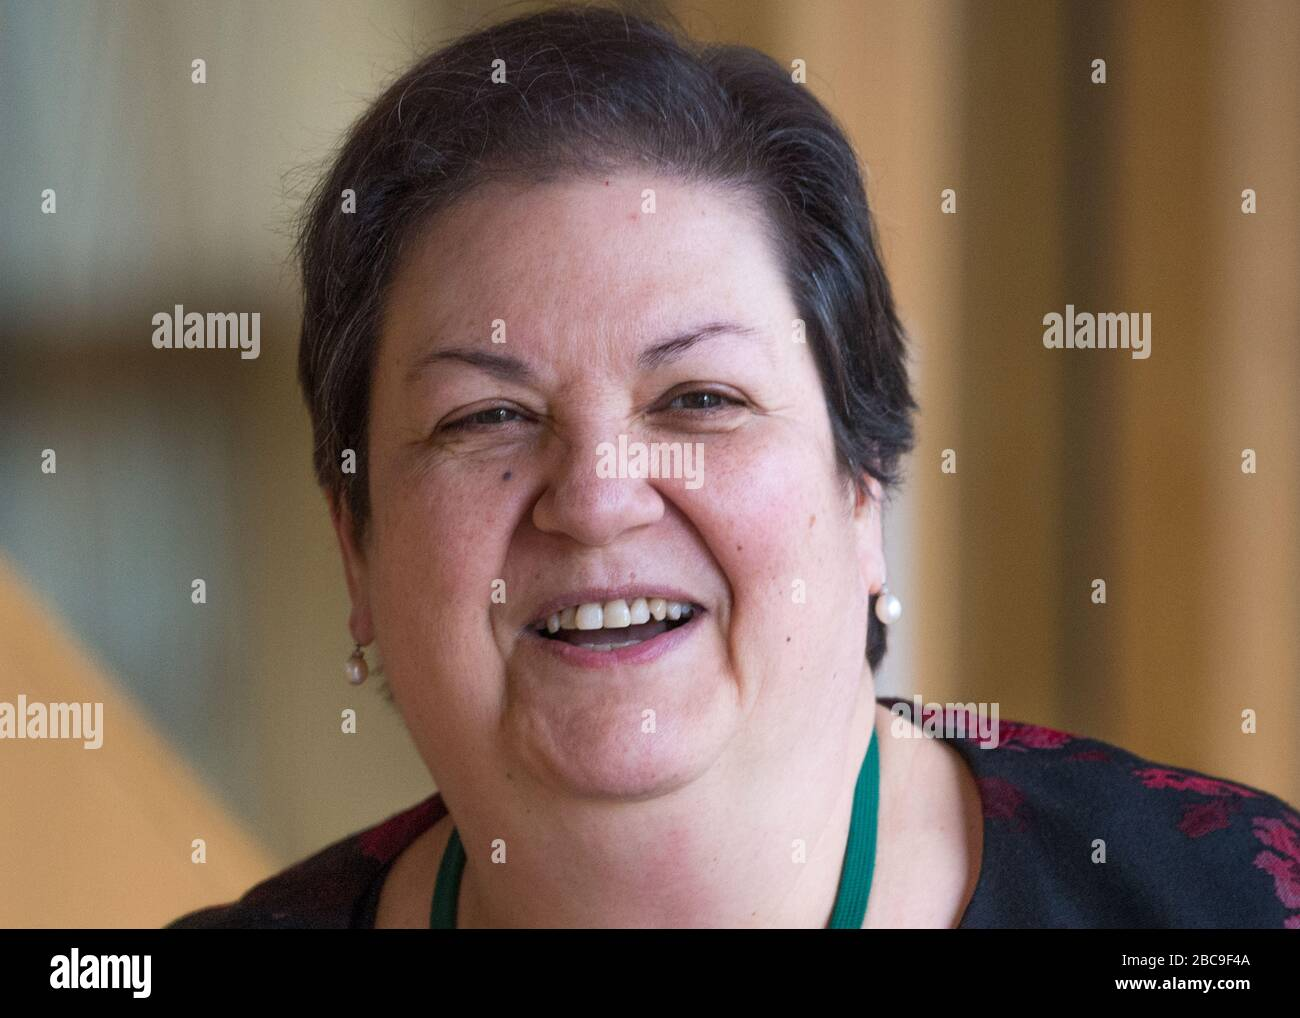 Edinburgh, UK. 5 March 2020. Pictured: Jackie Baillie MSP - Deputy Leader  of the Scottish Labour Party. Scenes from the Scottish Parliament in  Holyrood, Edinburgh Stock Photo - Alamy